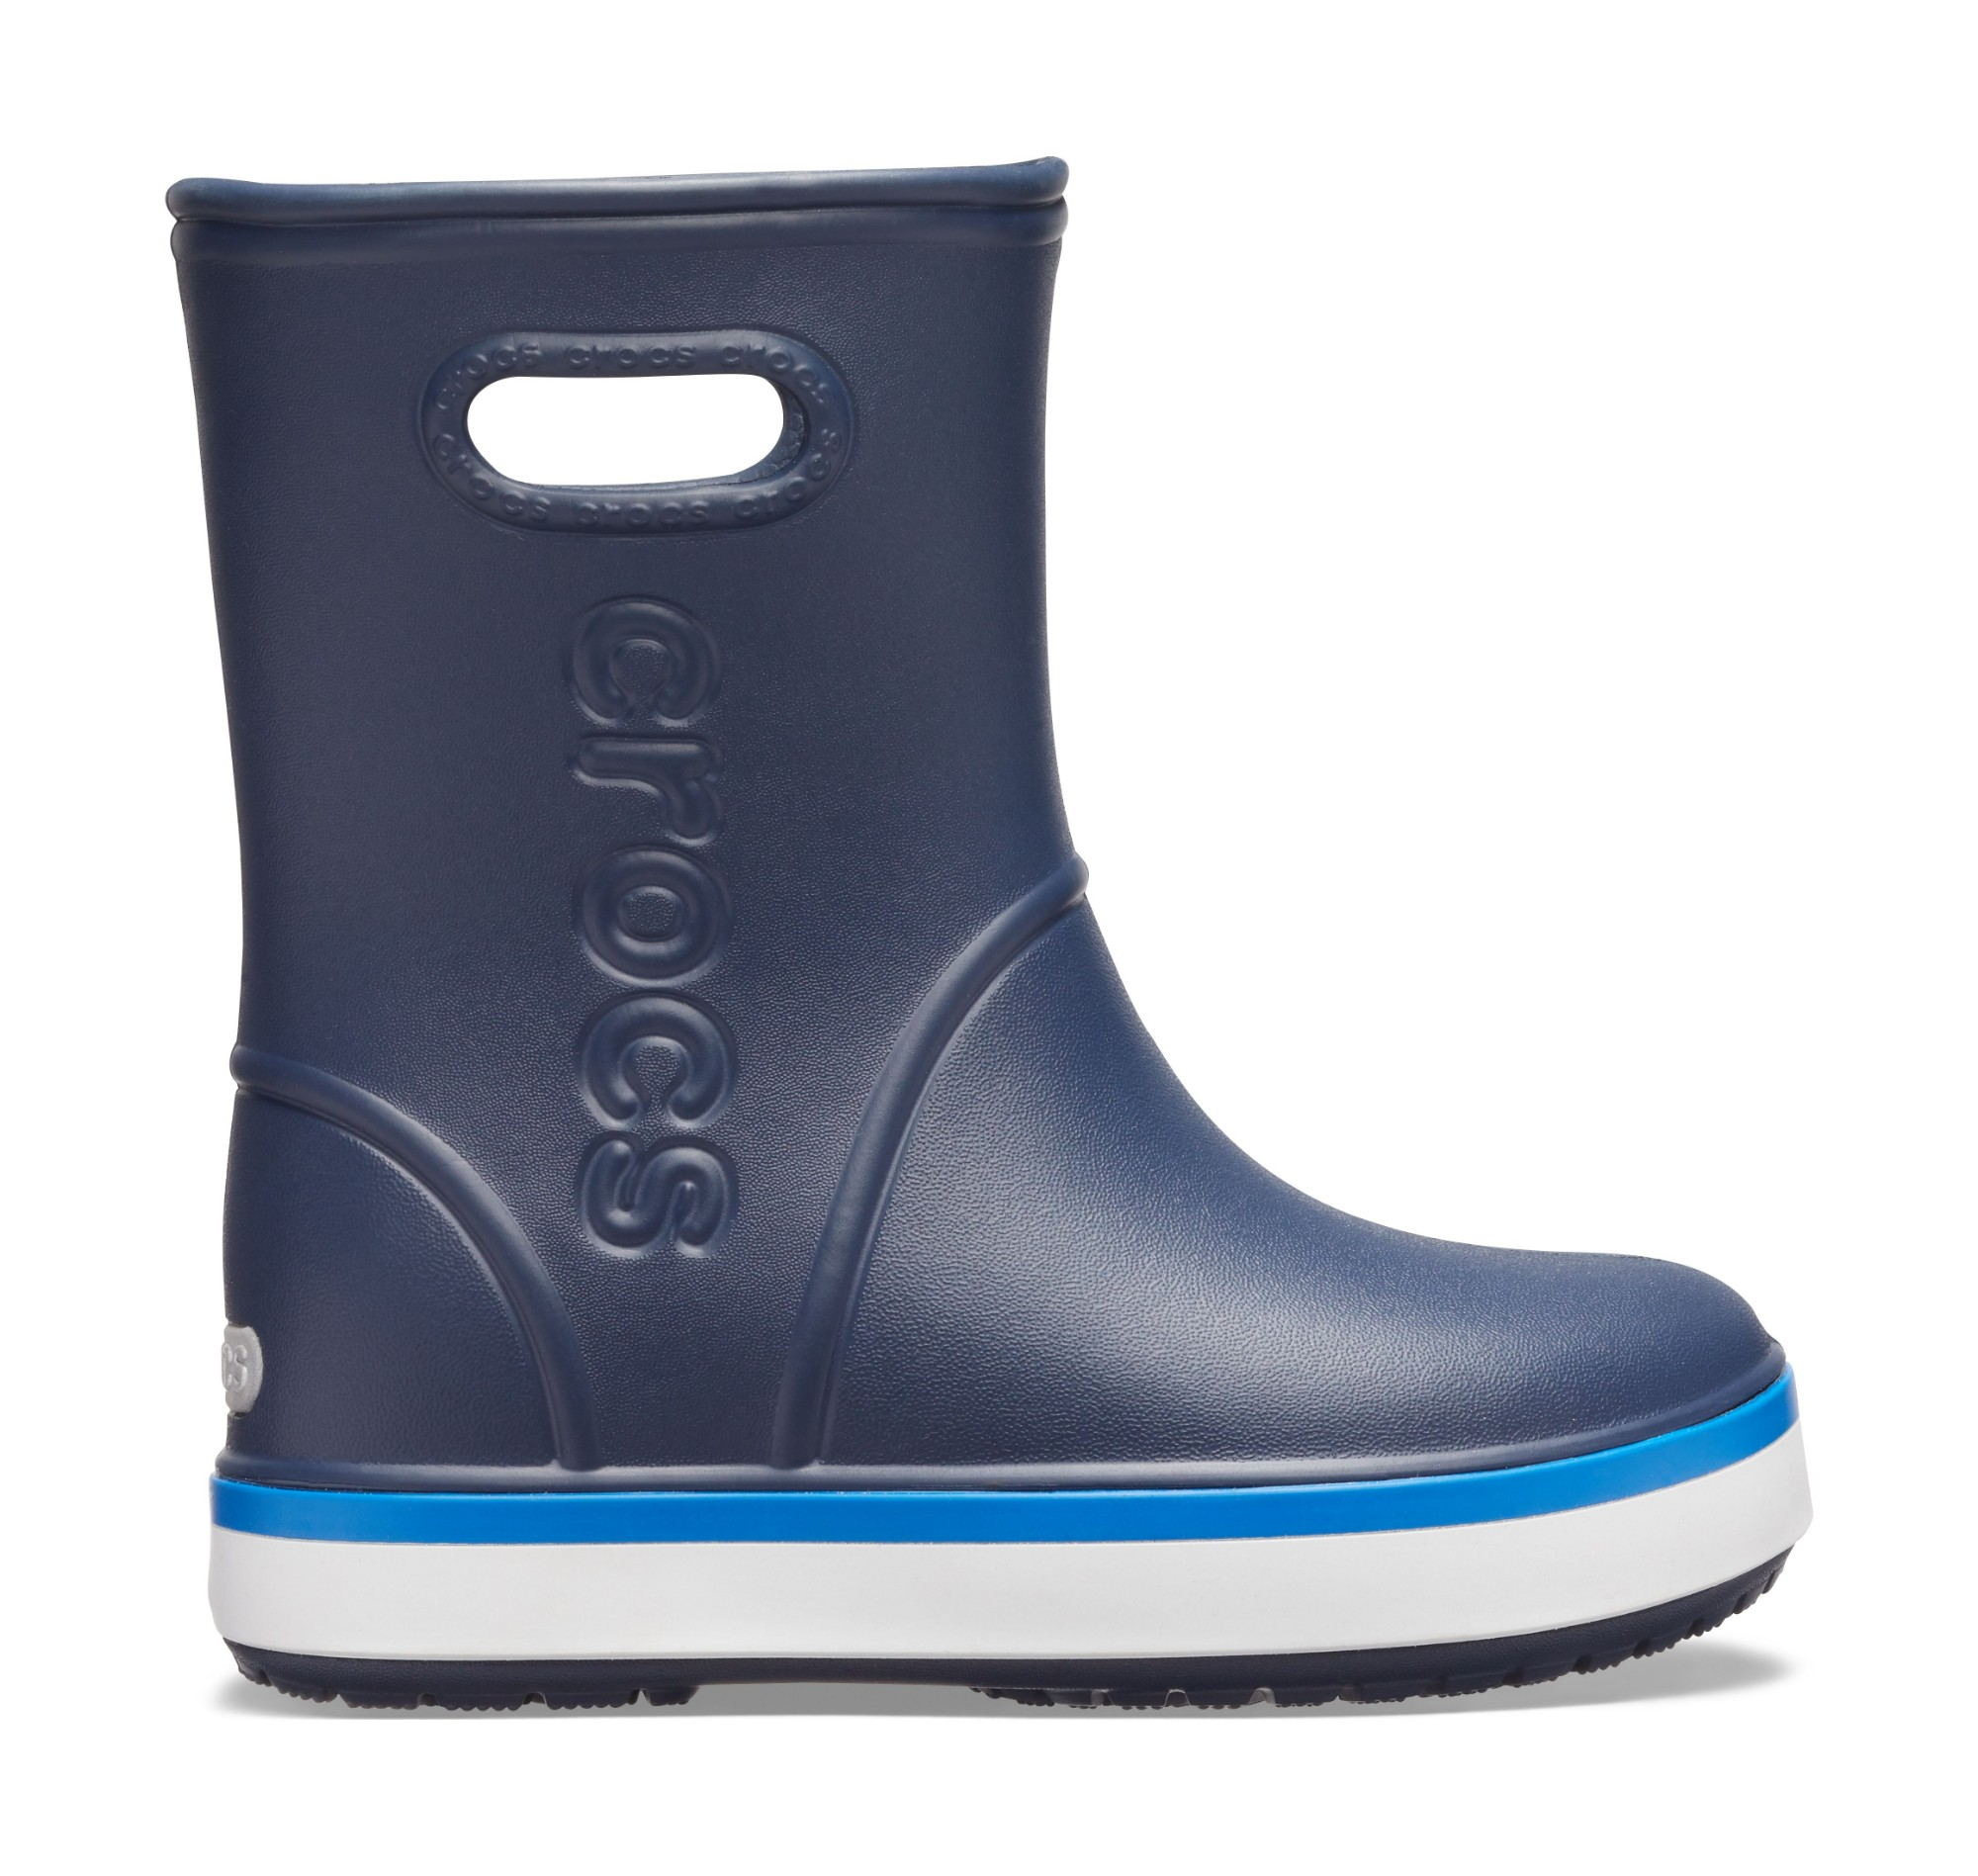 Crocs™ Crocband Rain Boot Kid's Navy/Bright Cobalt 28